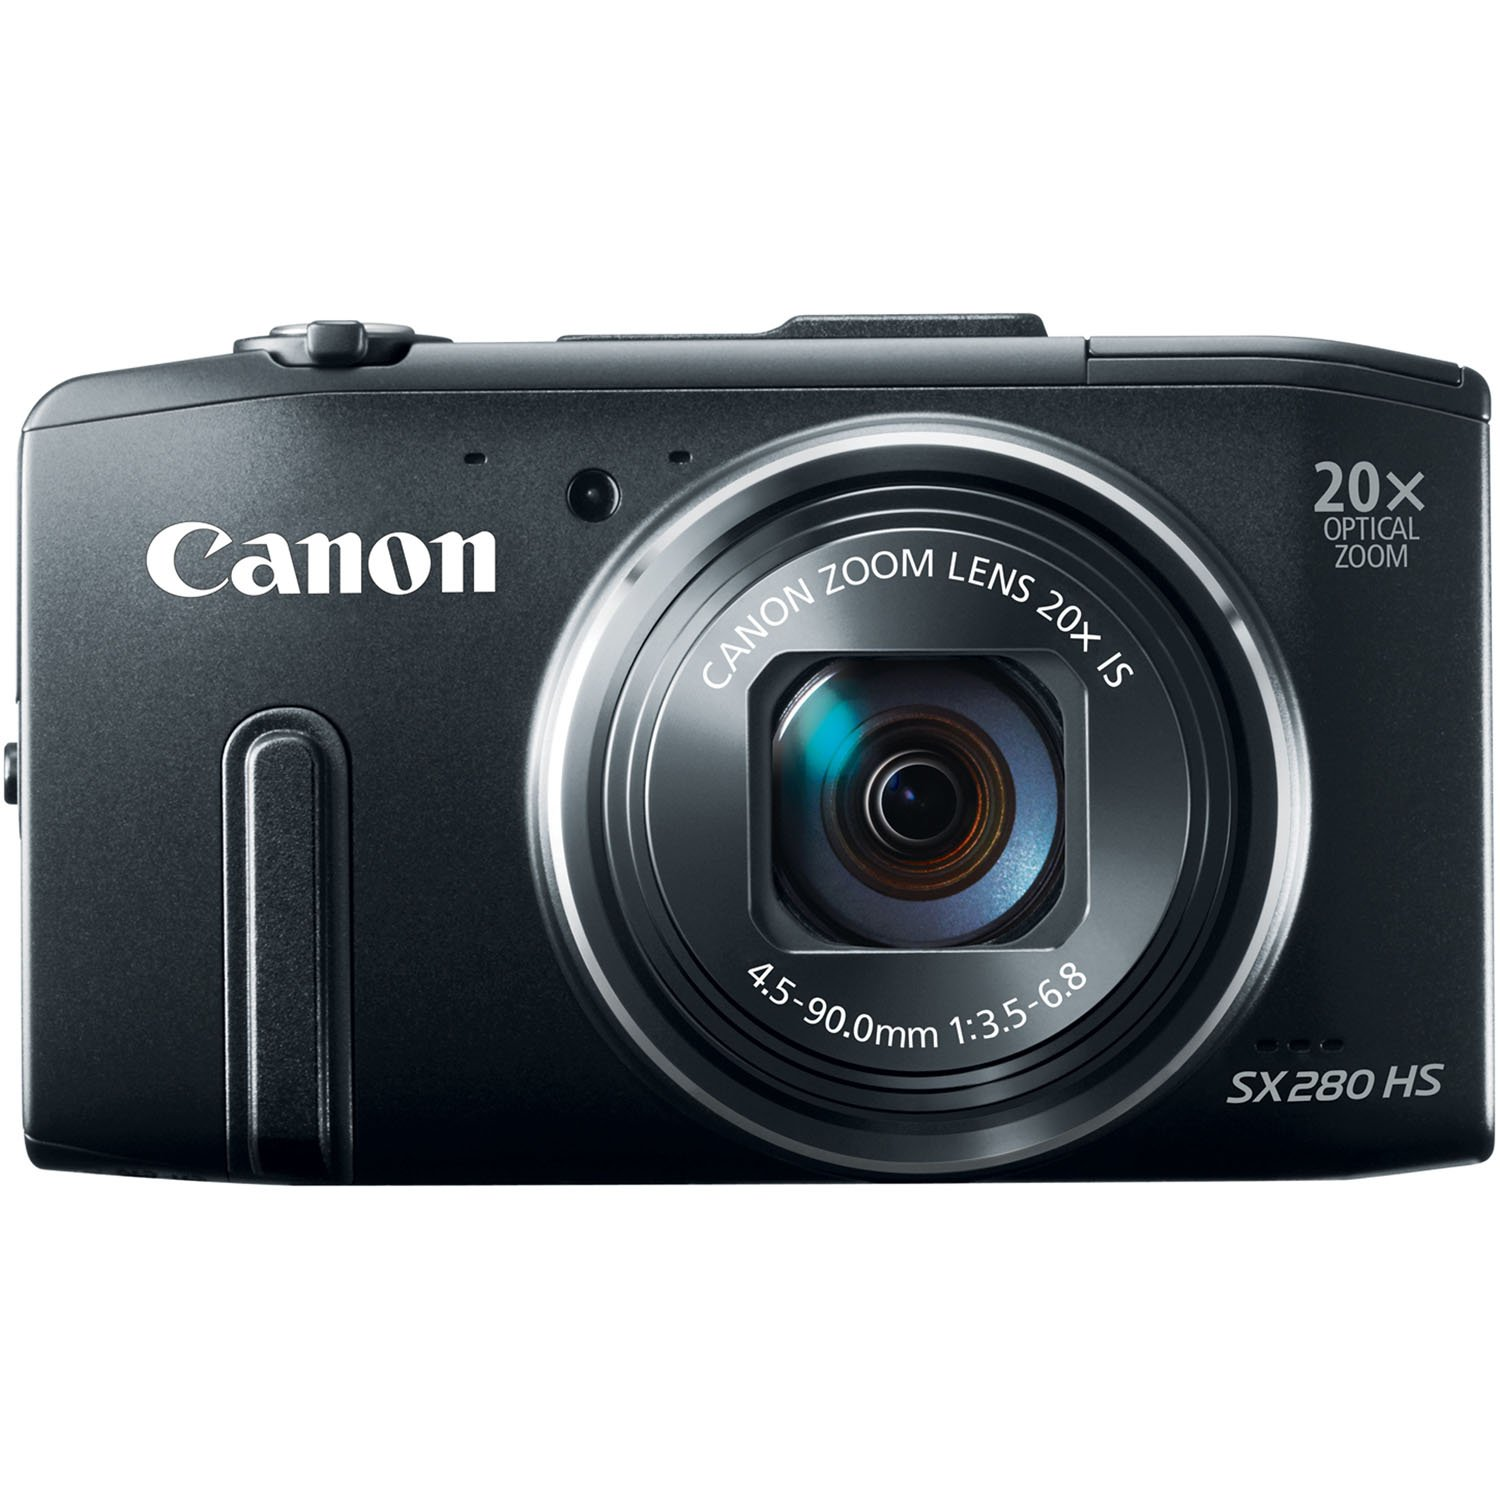 Canon PowerShot SX280 12MP Digital Camera with 20x Optical Image Stabilized Zoom with 3-Inch LCD ($199.00)